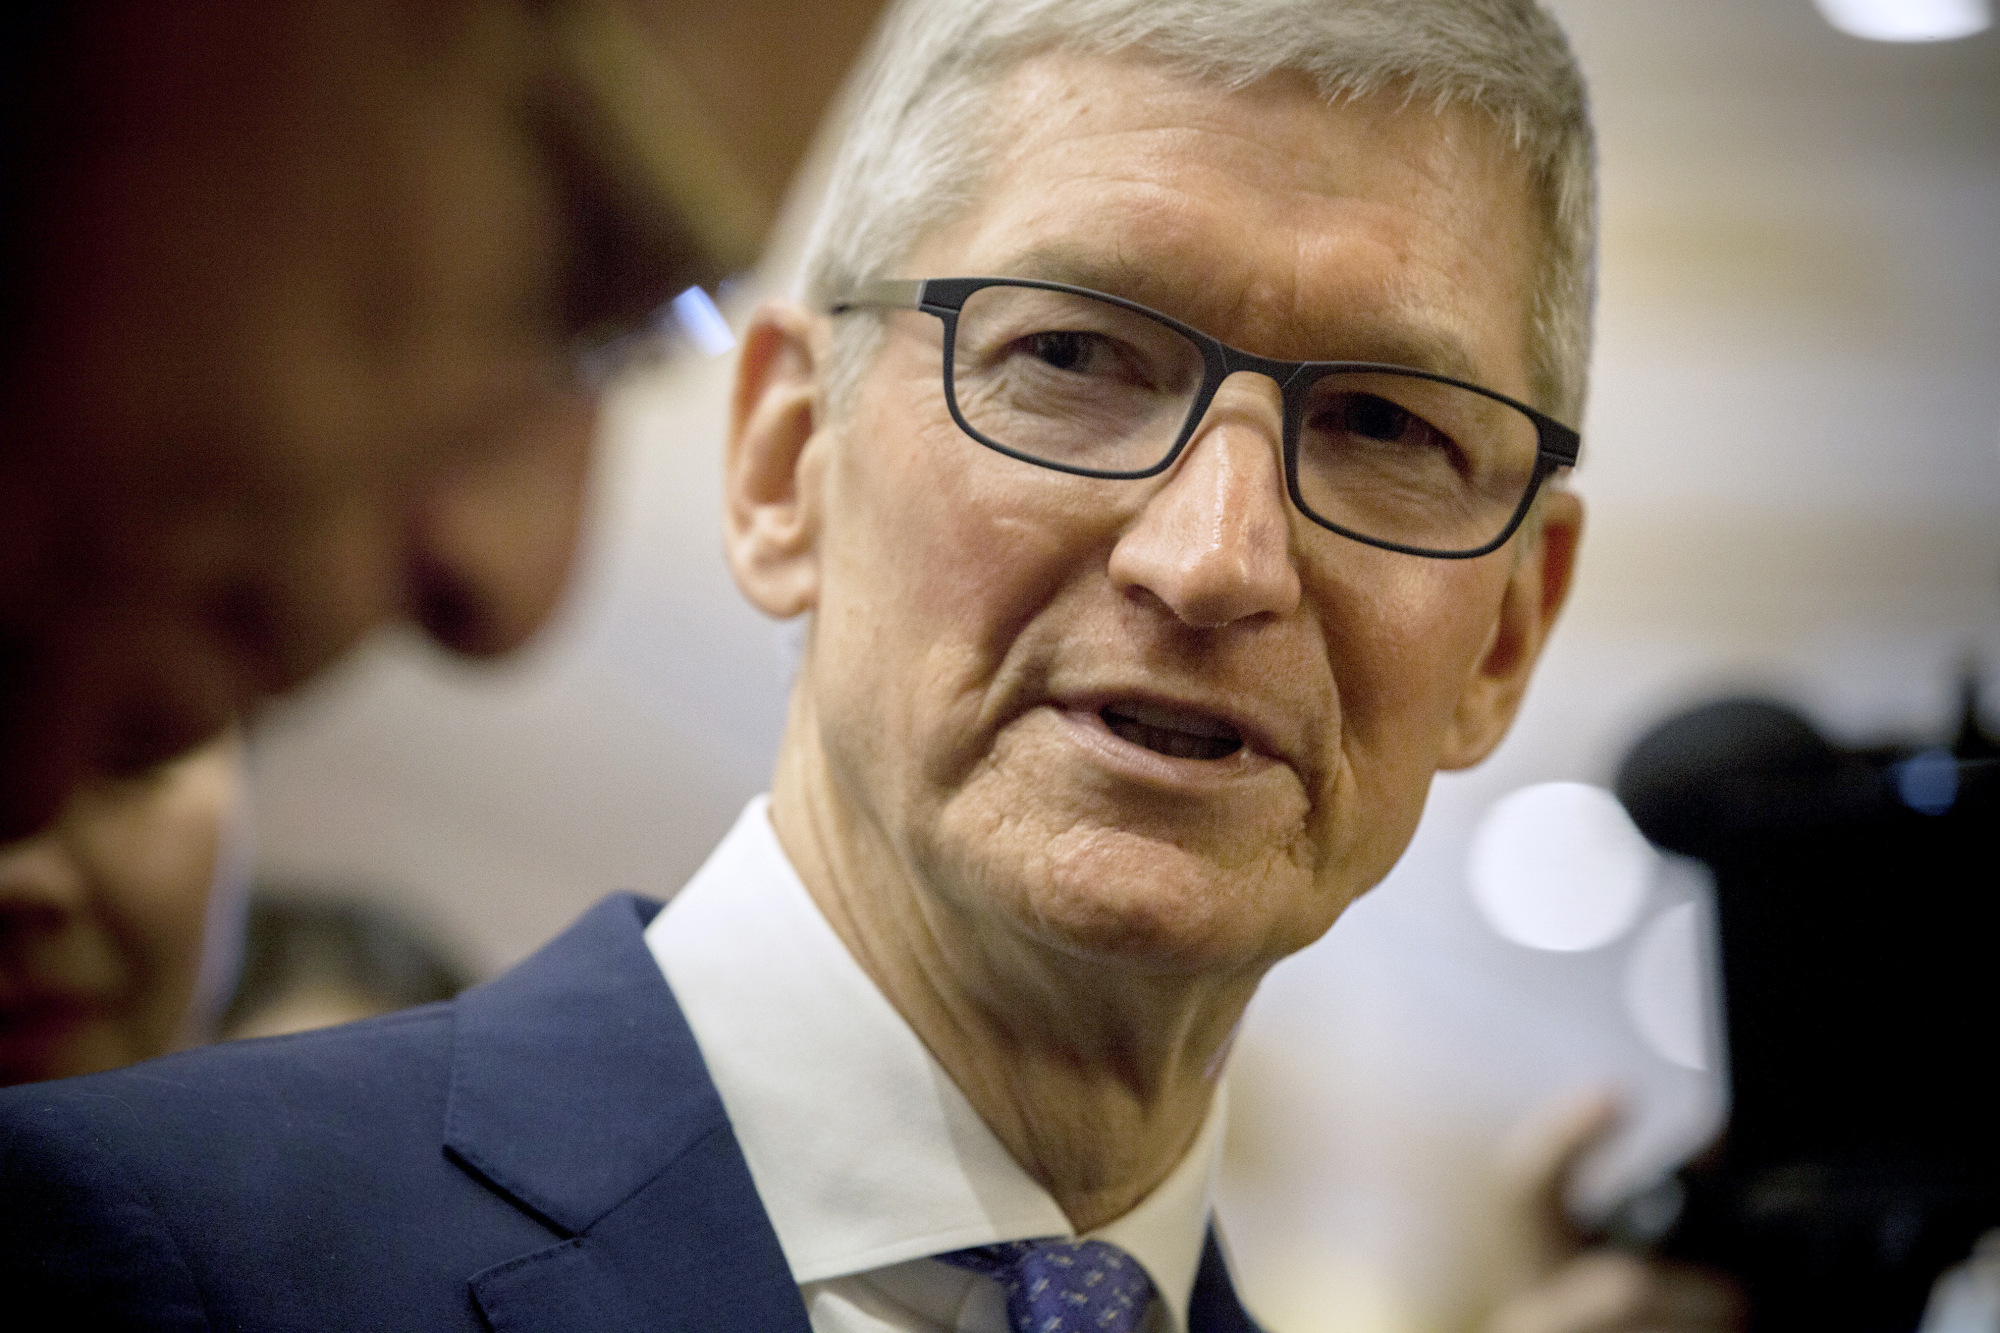 Apple Inc. CEO Tim Cook Arrives At The China Development Forum